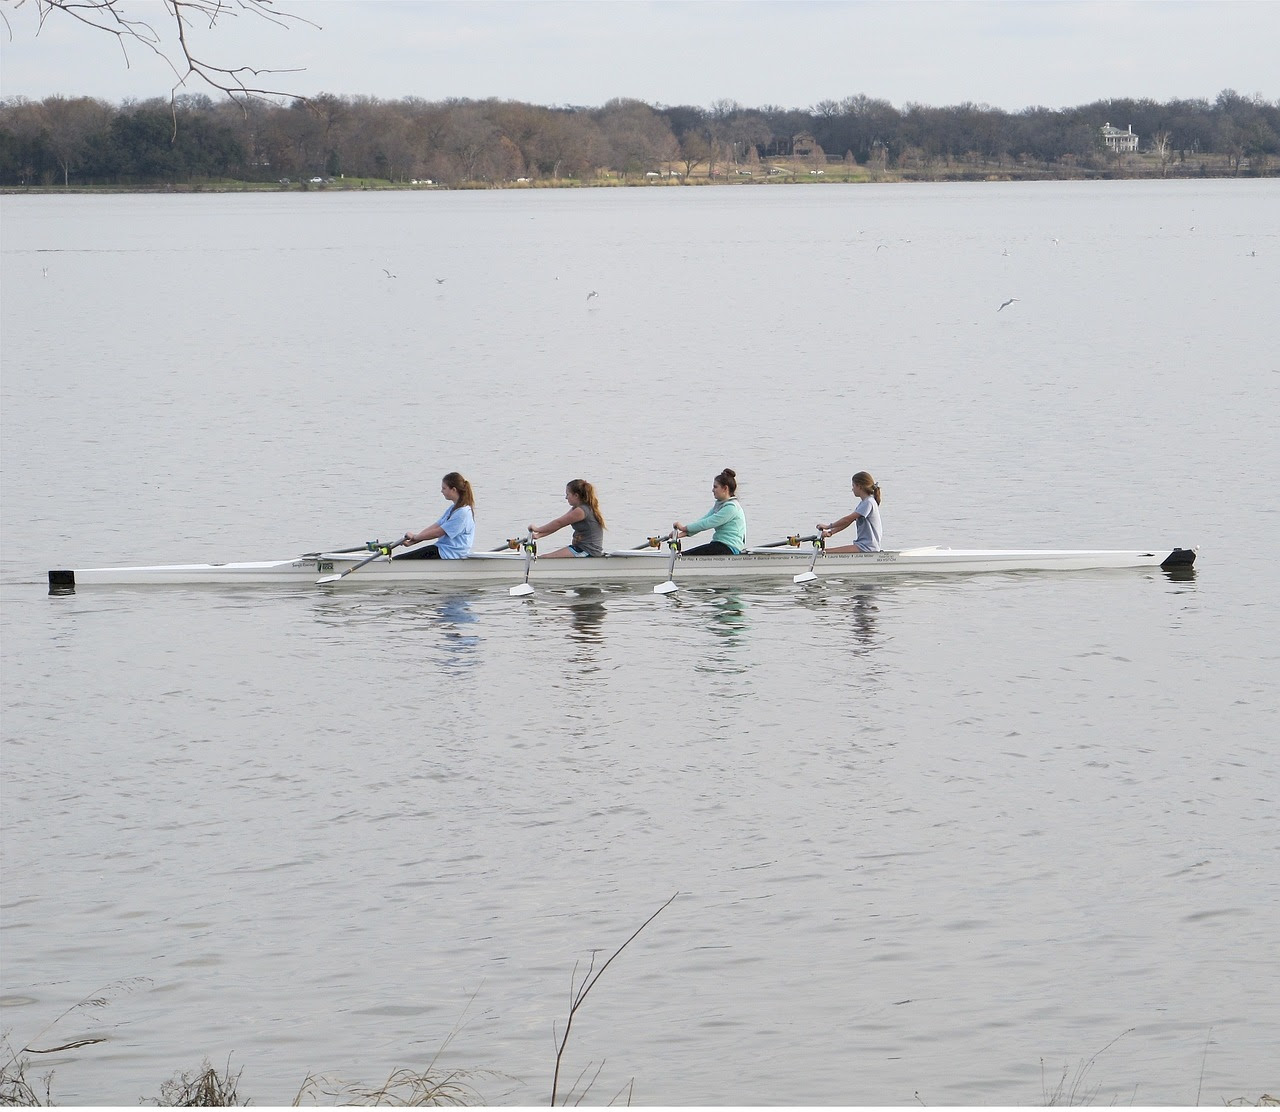 rowing-671954_1280